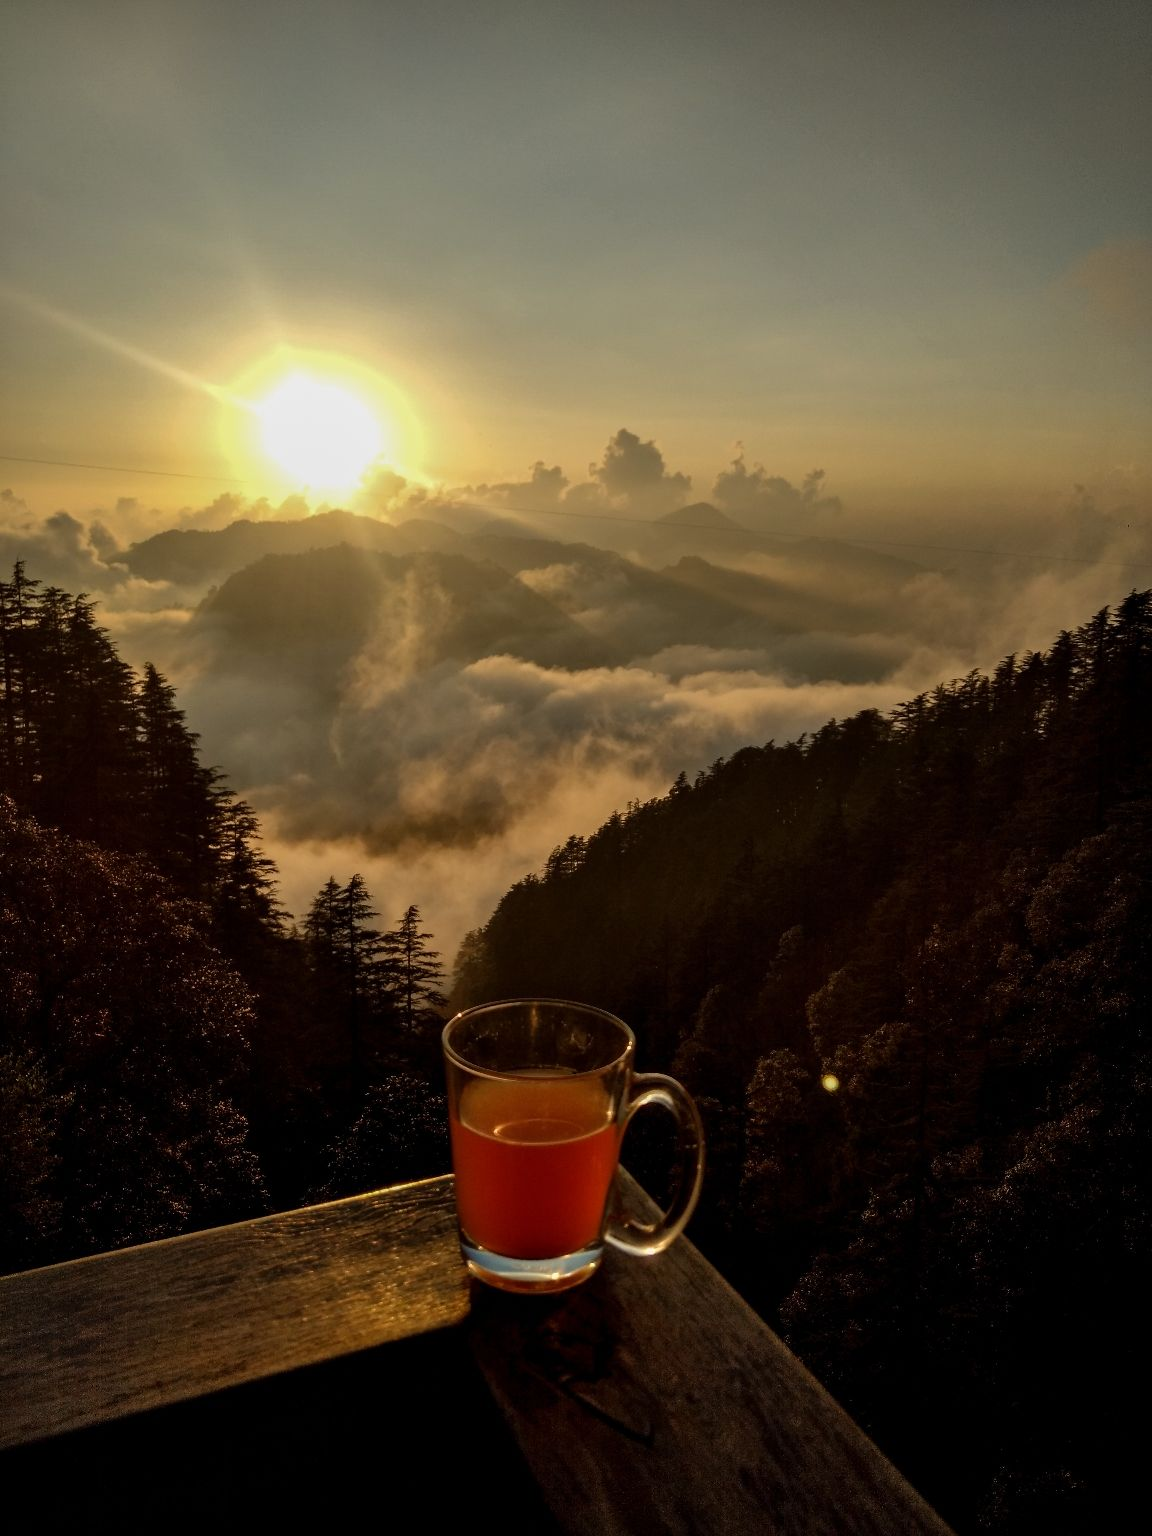 Photo of Landour By Tamanna Chaudhary